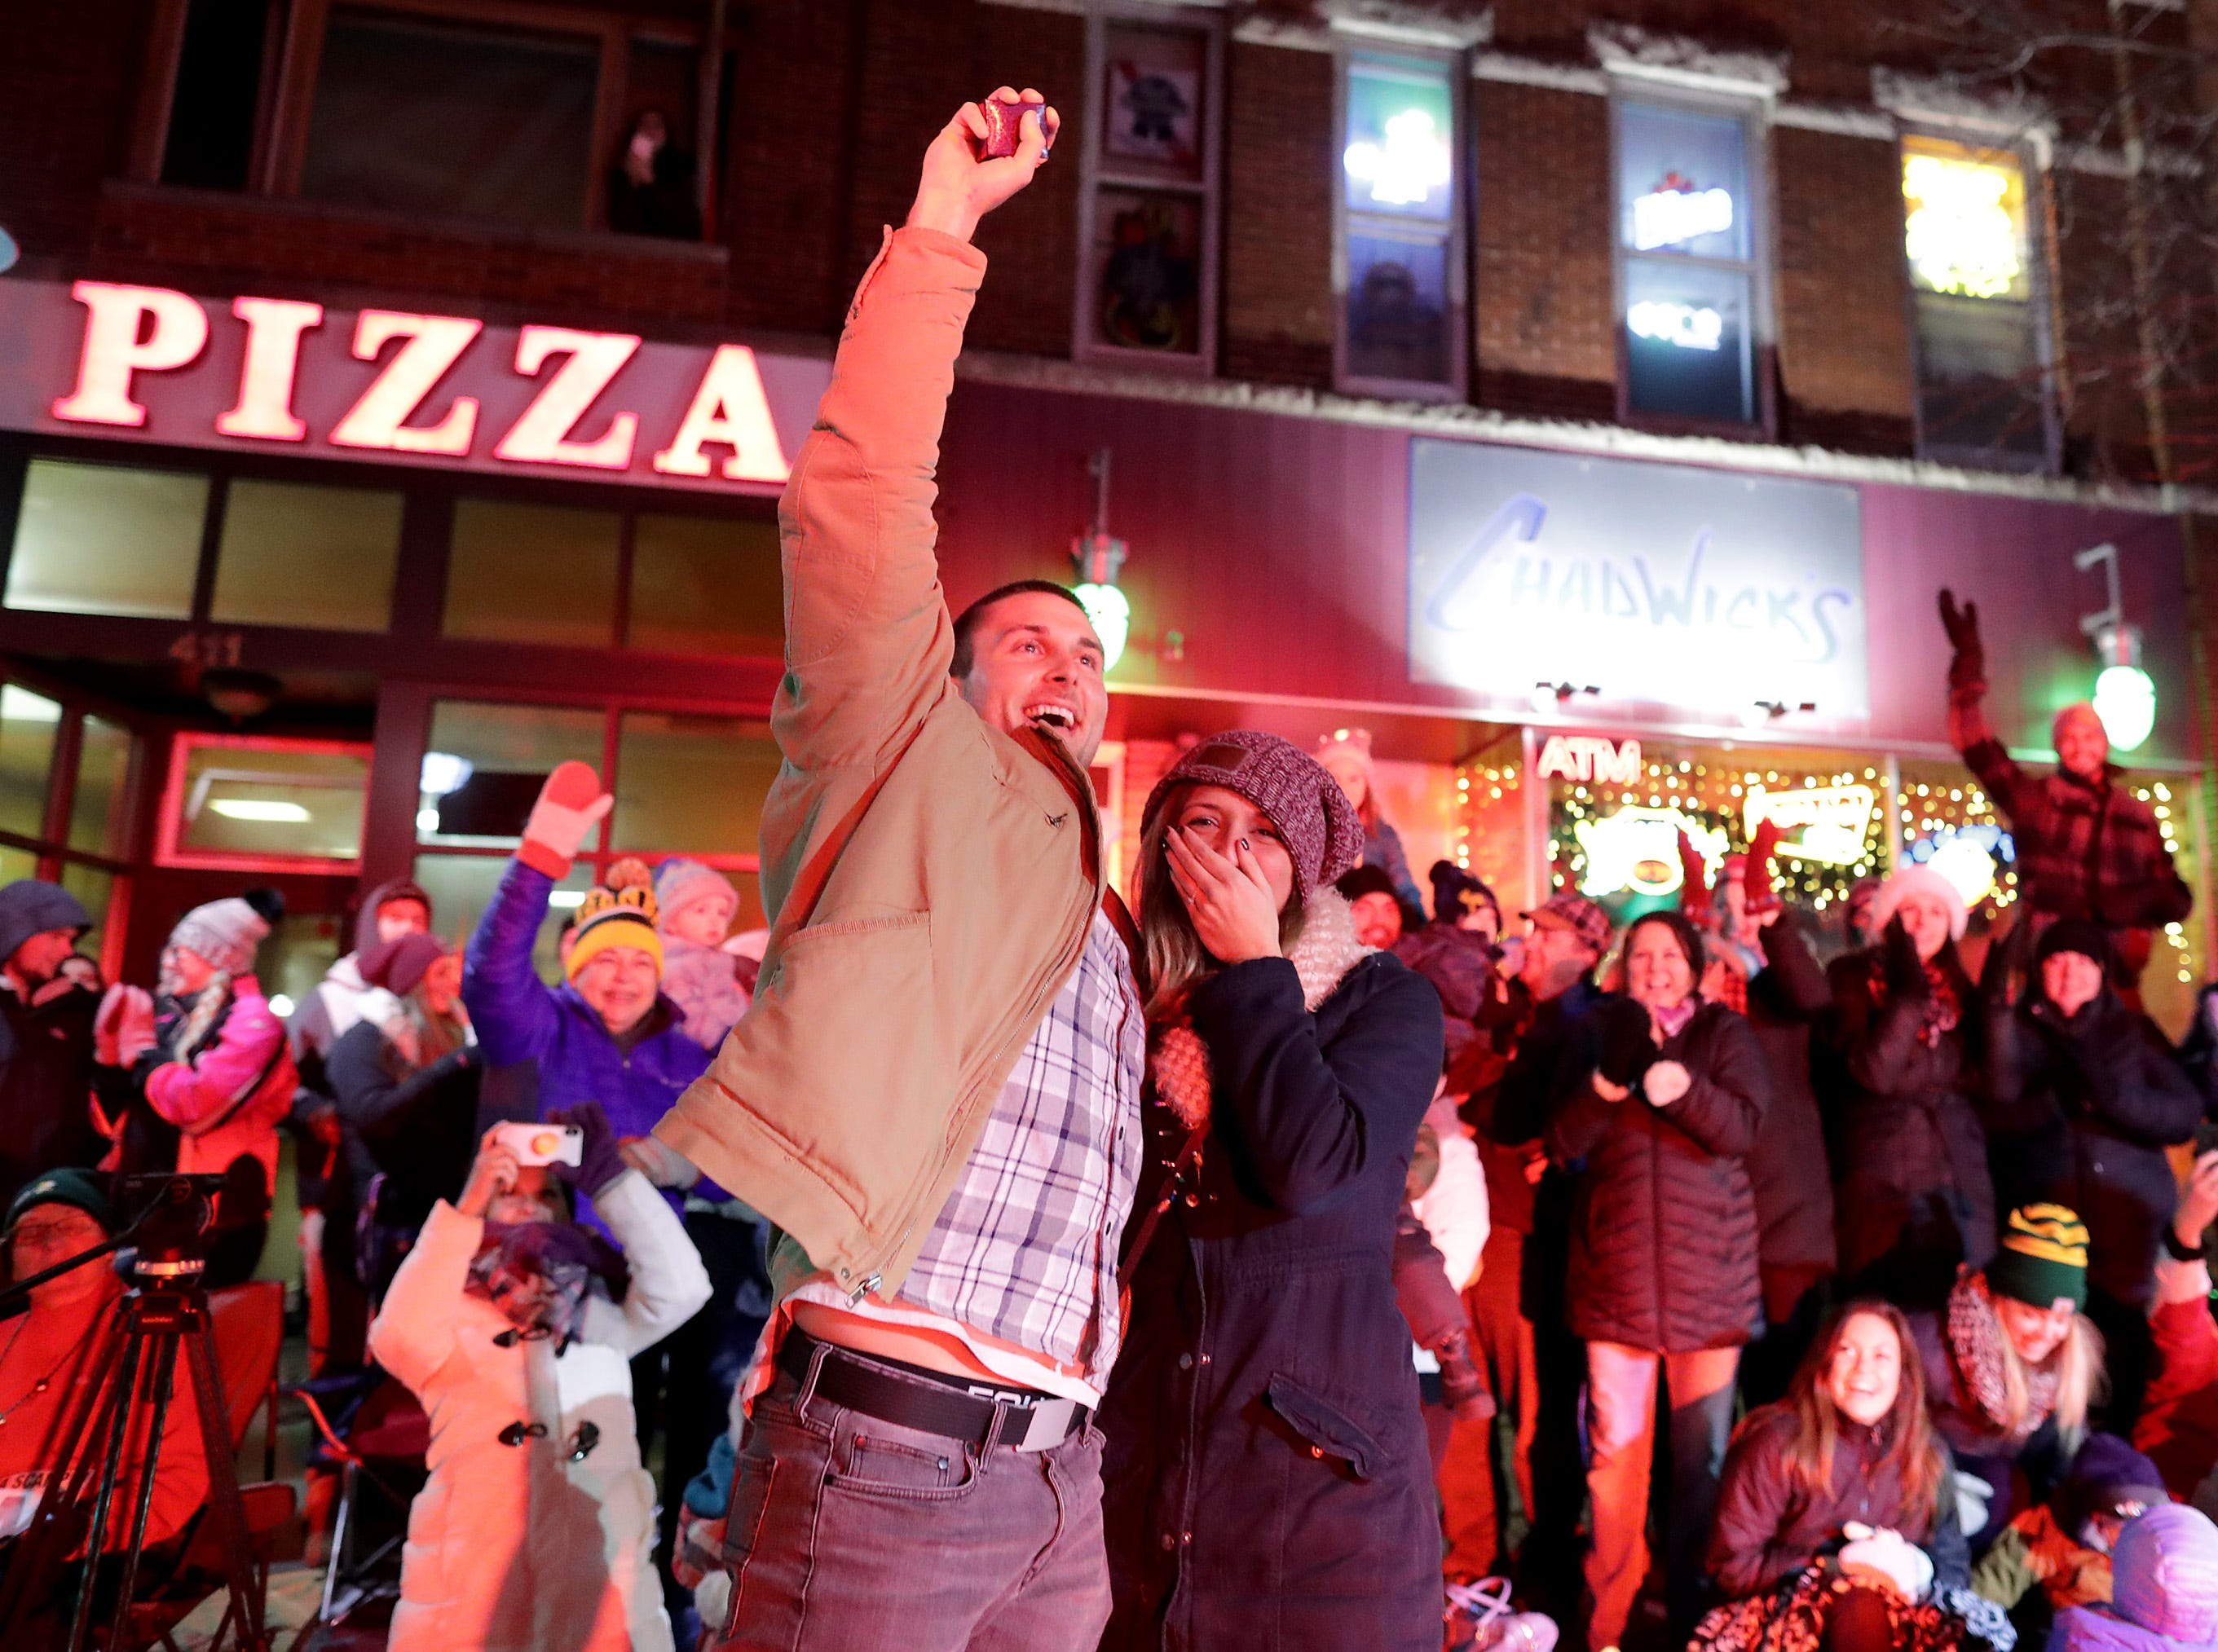 Appleton firefighter Bryce Sternhagen proposes to Appleton West teacher Samantha Cucci during the 48th Annual Downtown Appleton Christmas Parade on Tuesday, Nov. 20, 2018 in Appleton, Wis. Sternhagen left the parade to propose and she said yes. Wm. Glasheen/USA TODAY NETWORK-Wisconsin.